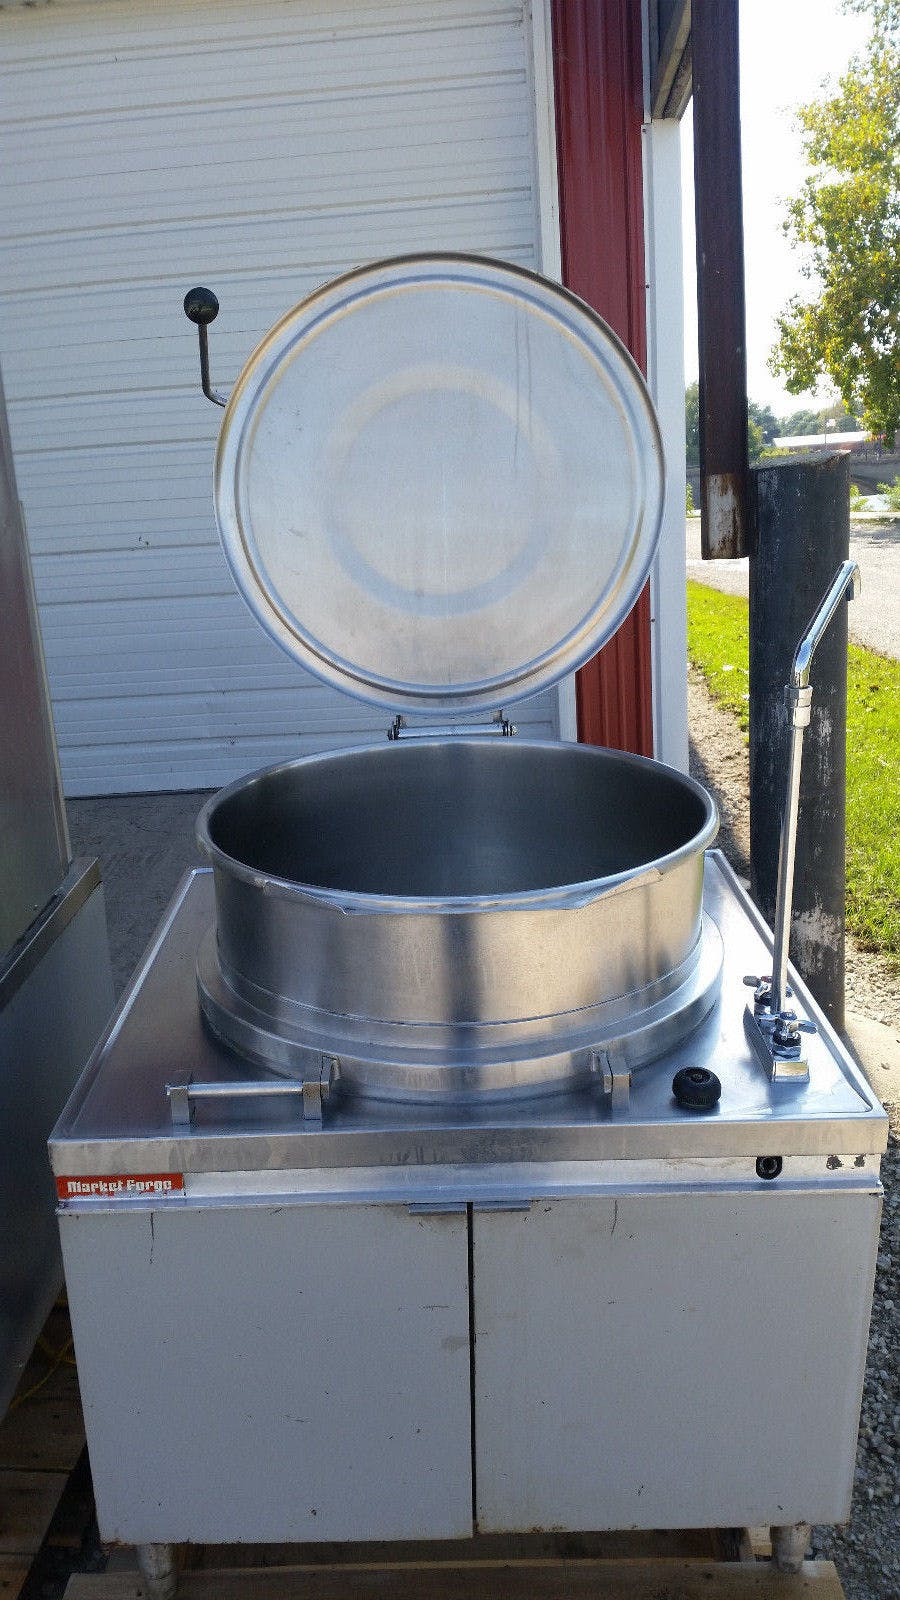 Market Forge MT40 Direct Steam Kettles 40 Gal Need Power Source - sold by Jak's Restaurant Supply